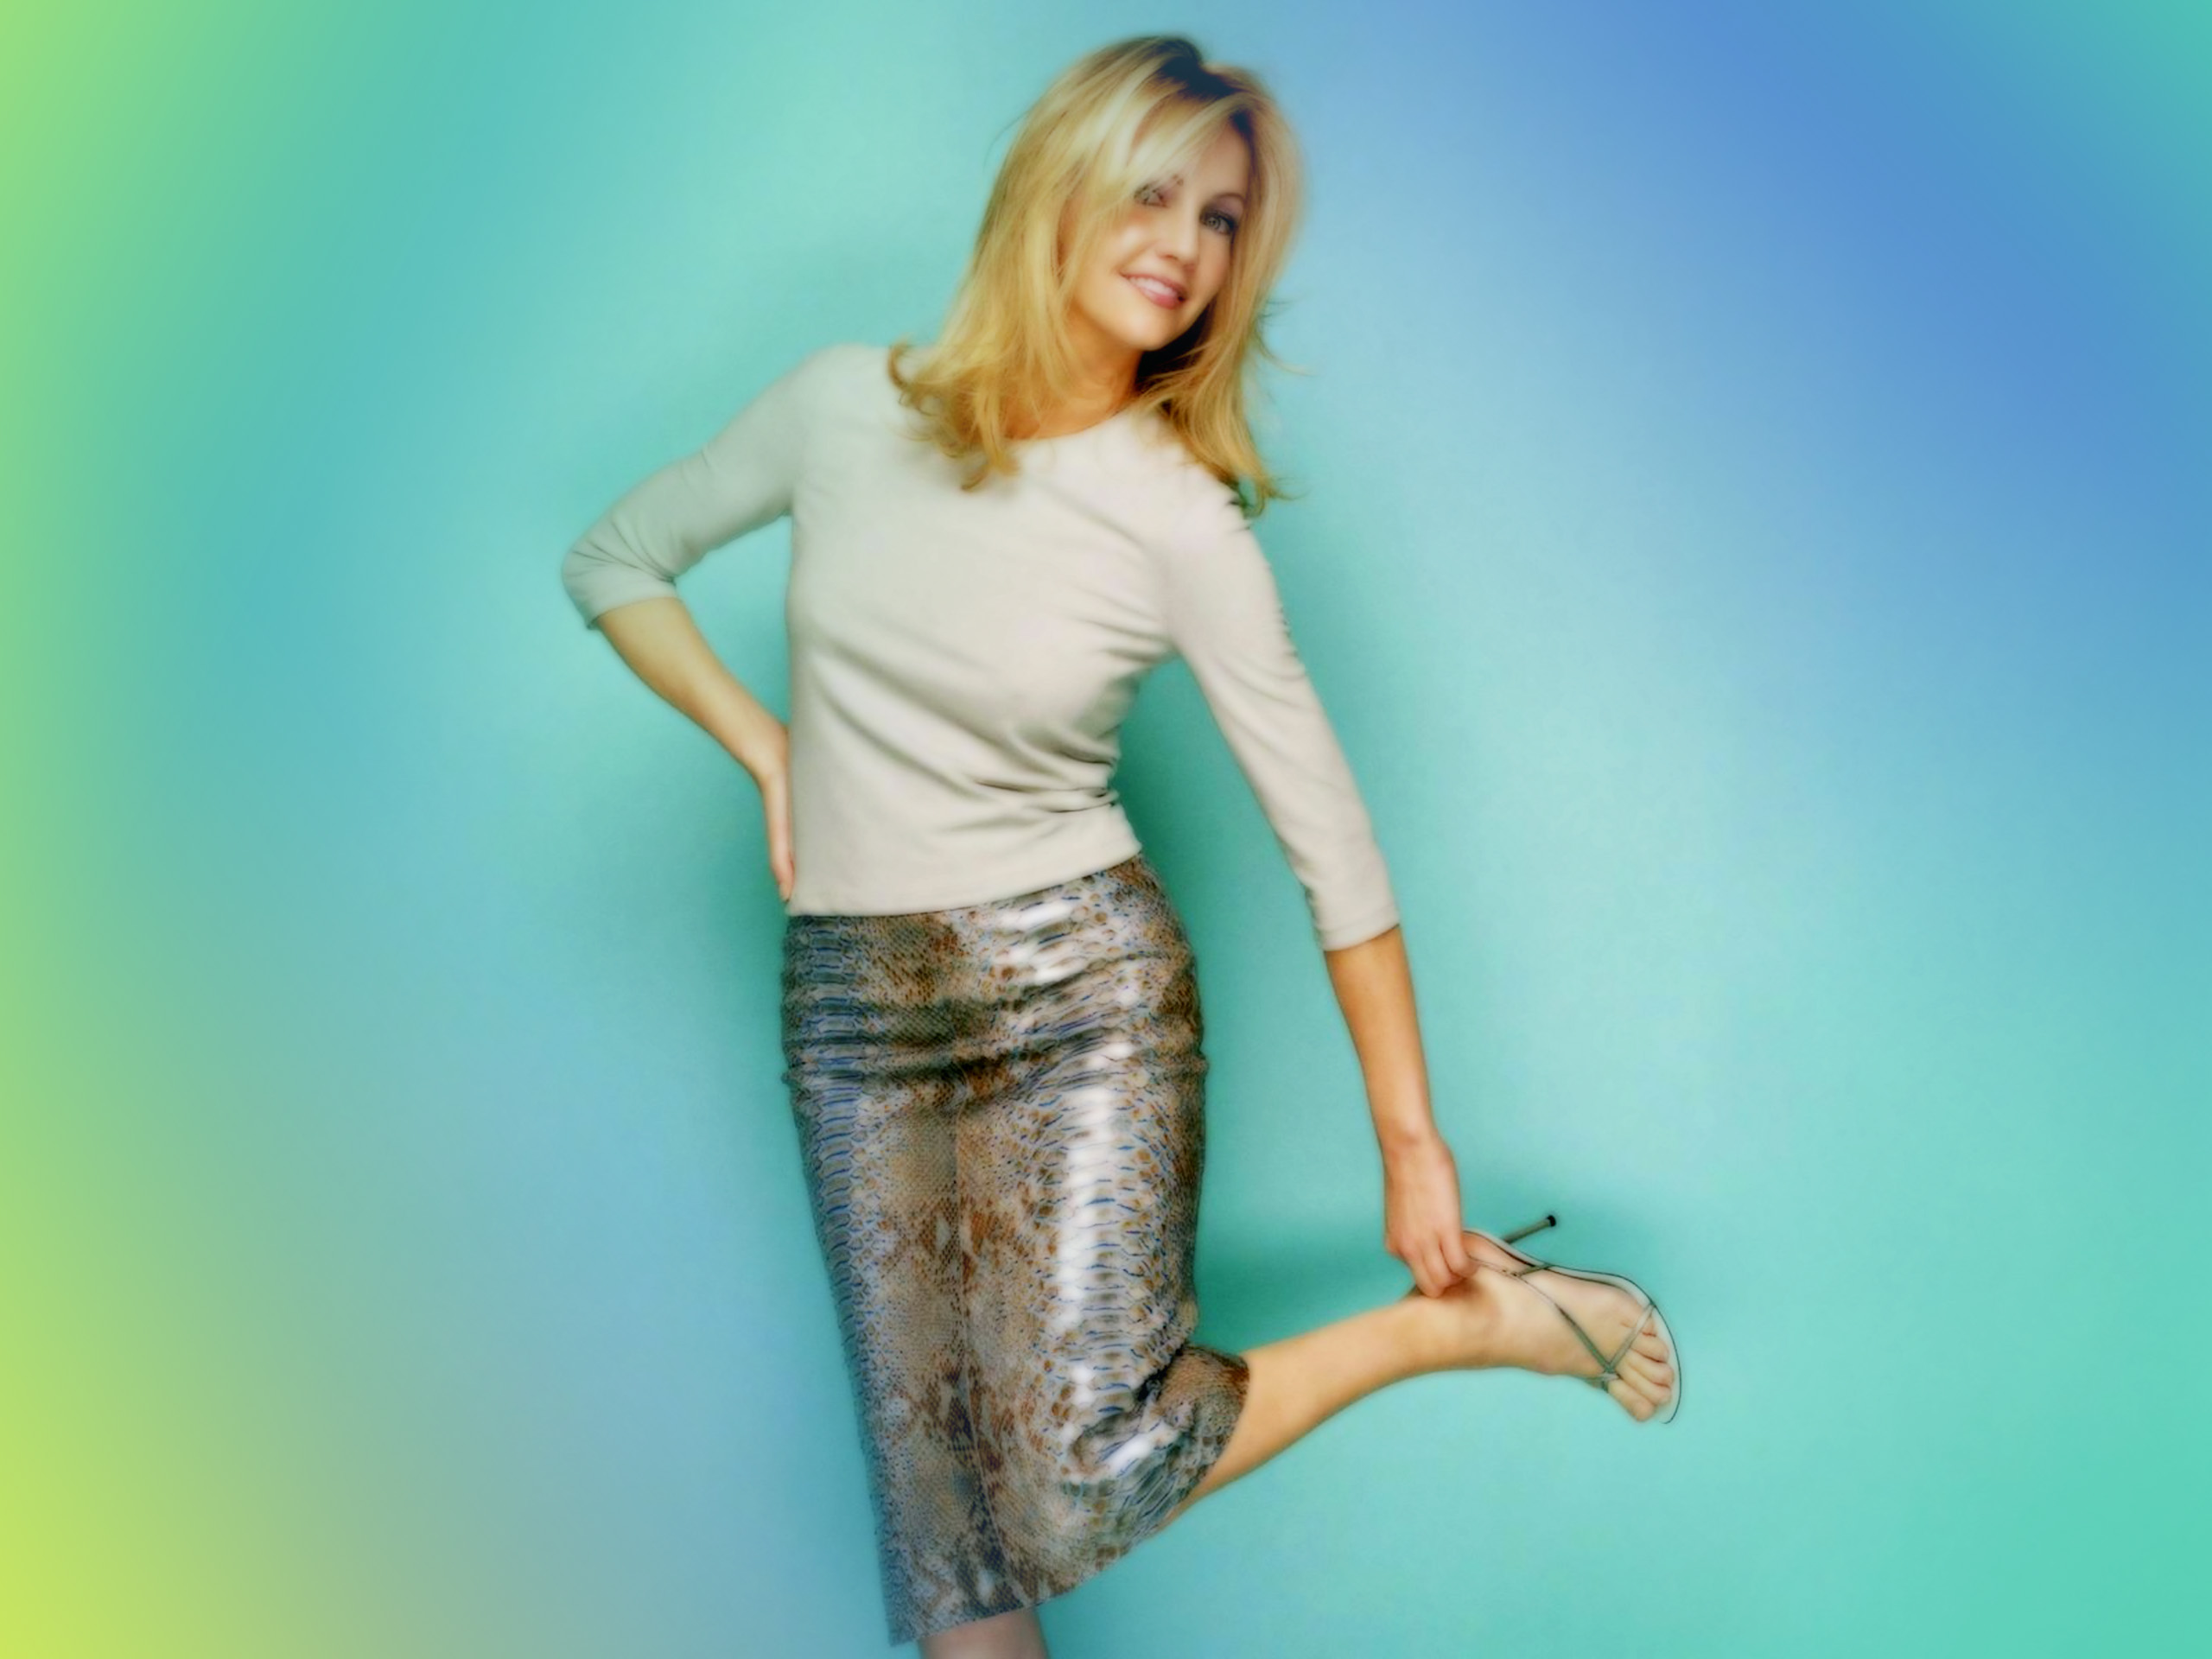 2560x1920 - Heather Locklear Wallpapers 23